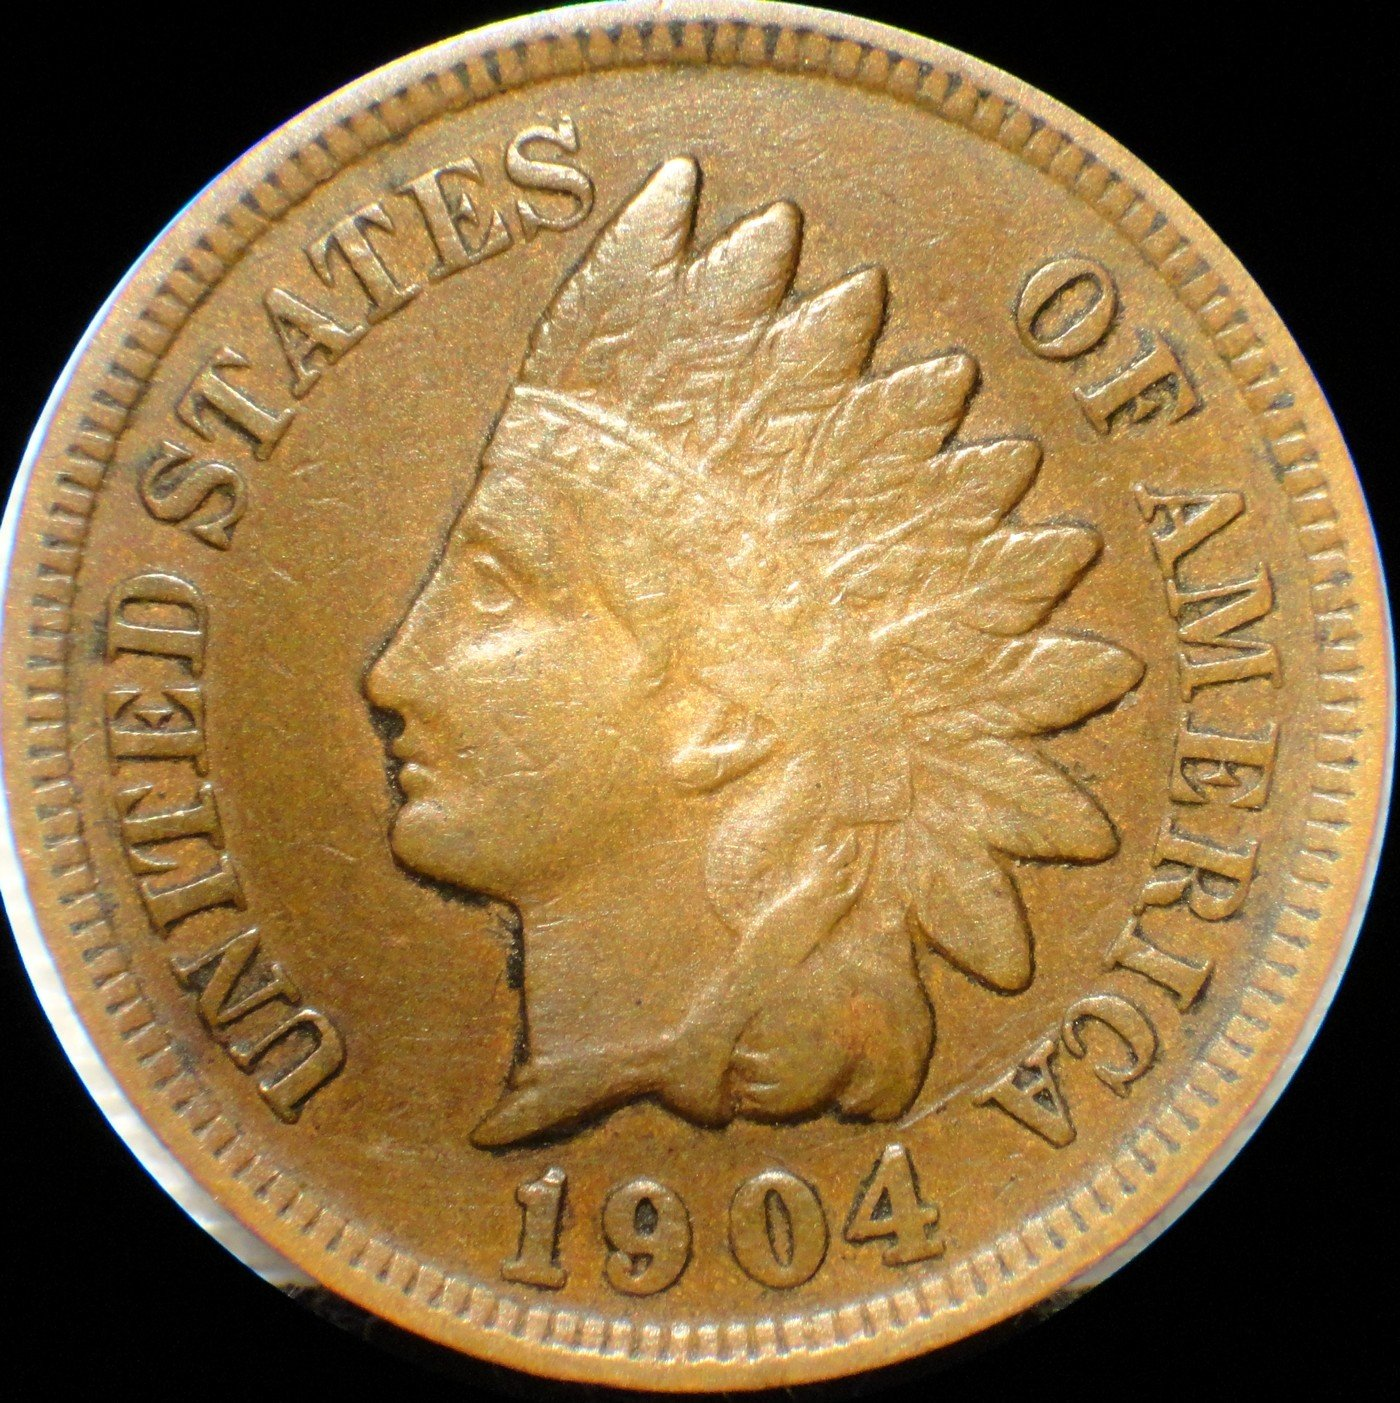 1904 MPD-009 Indian Head Penny